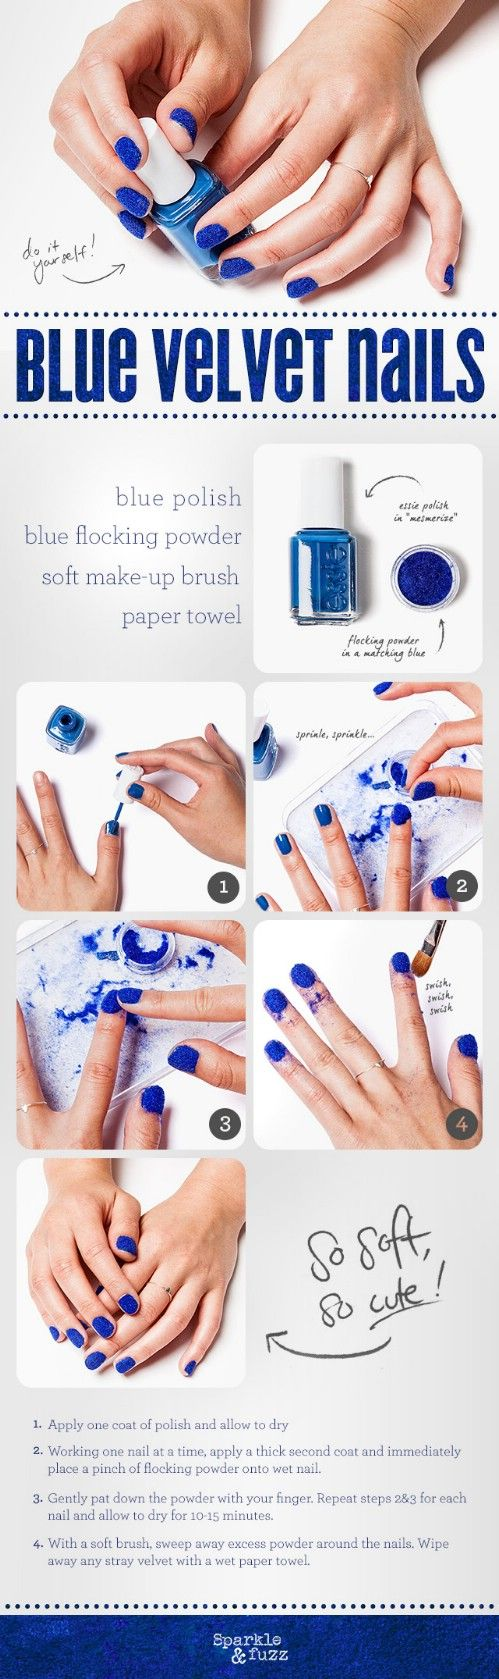 Nail Art Ideas » Nail Art School Online - Pictures of Nail Art ...